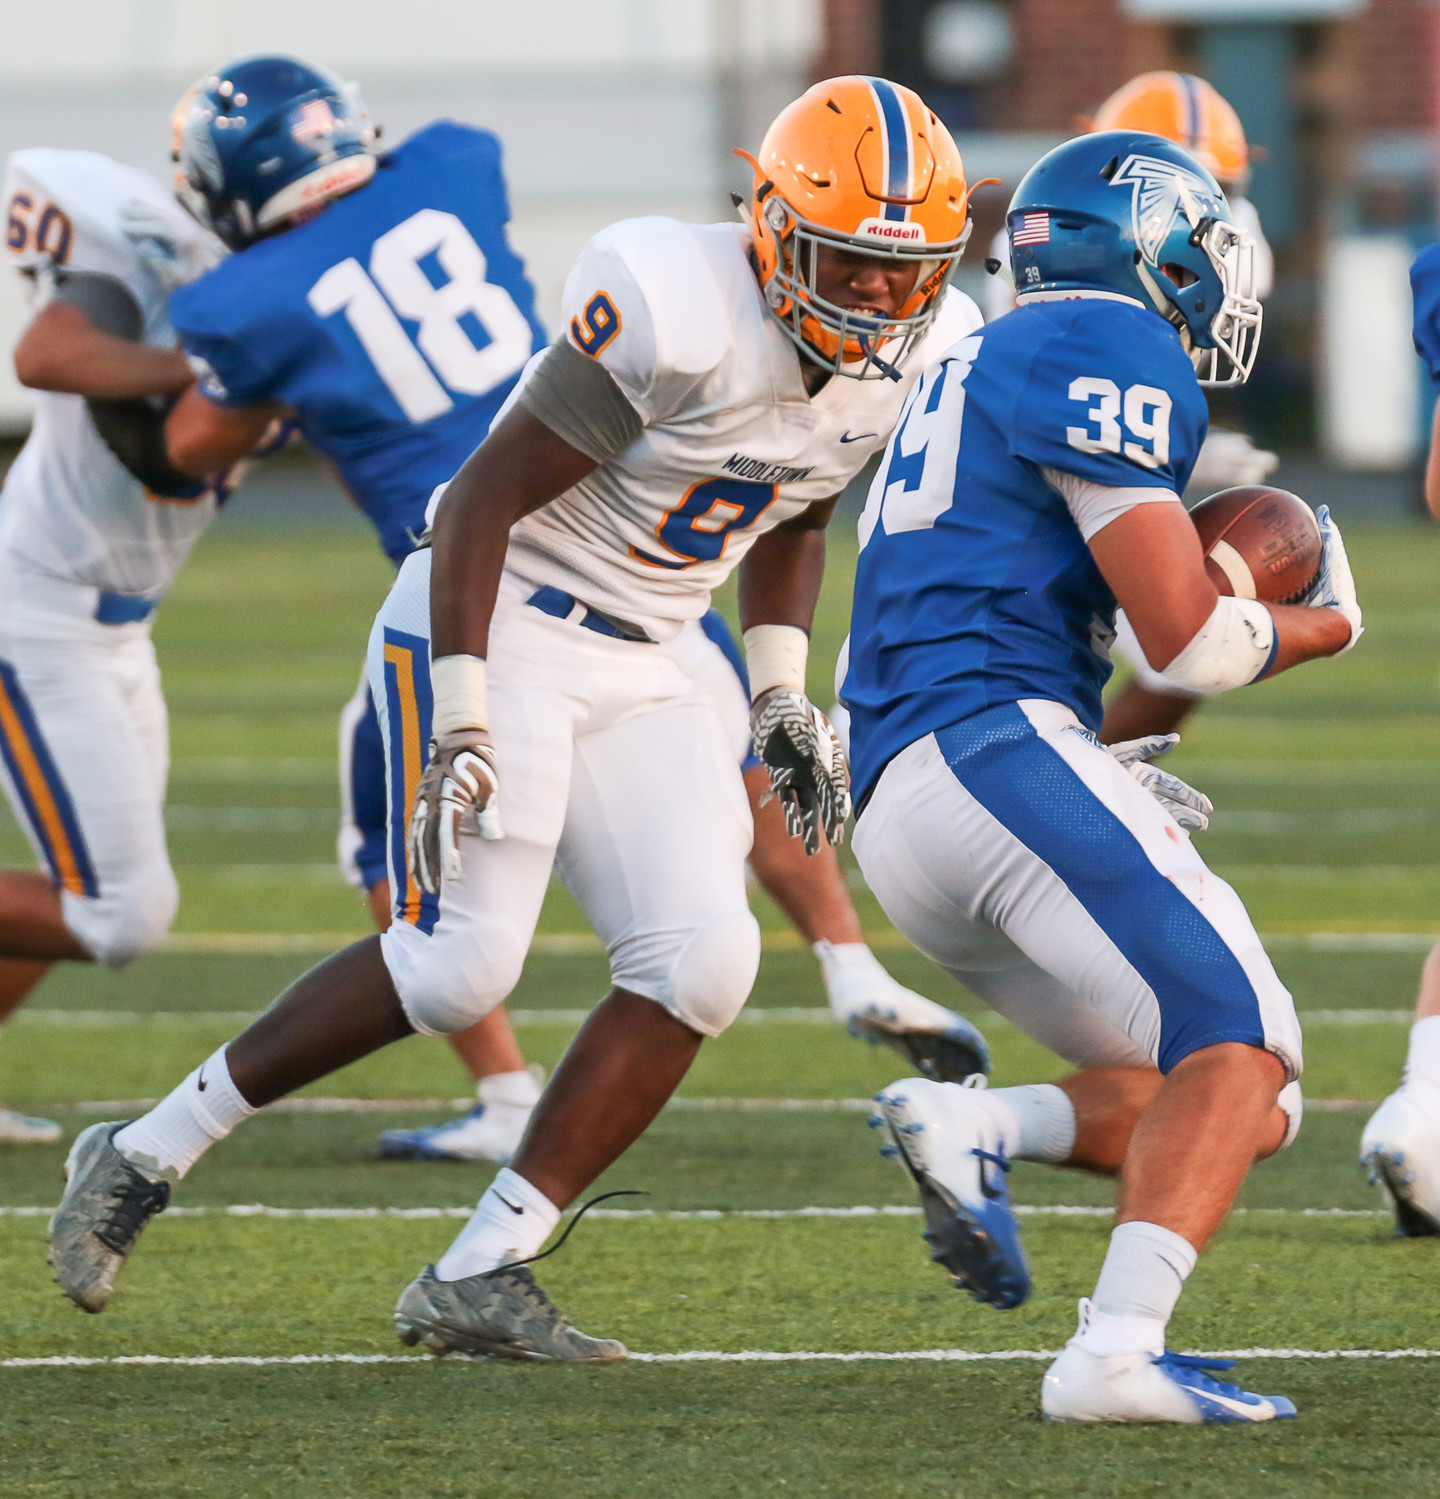 Middletown defensive end Adonis Taveras bears down on Lower Dauphin running back Isaac Buck.